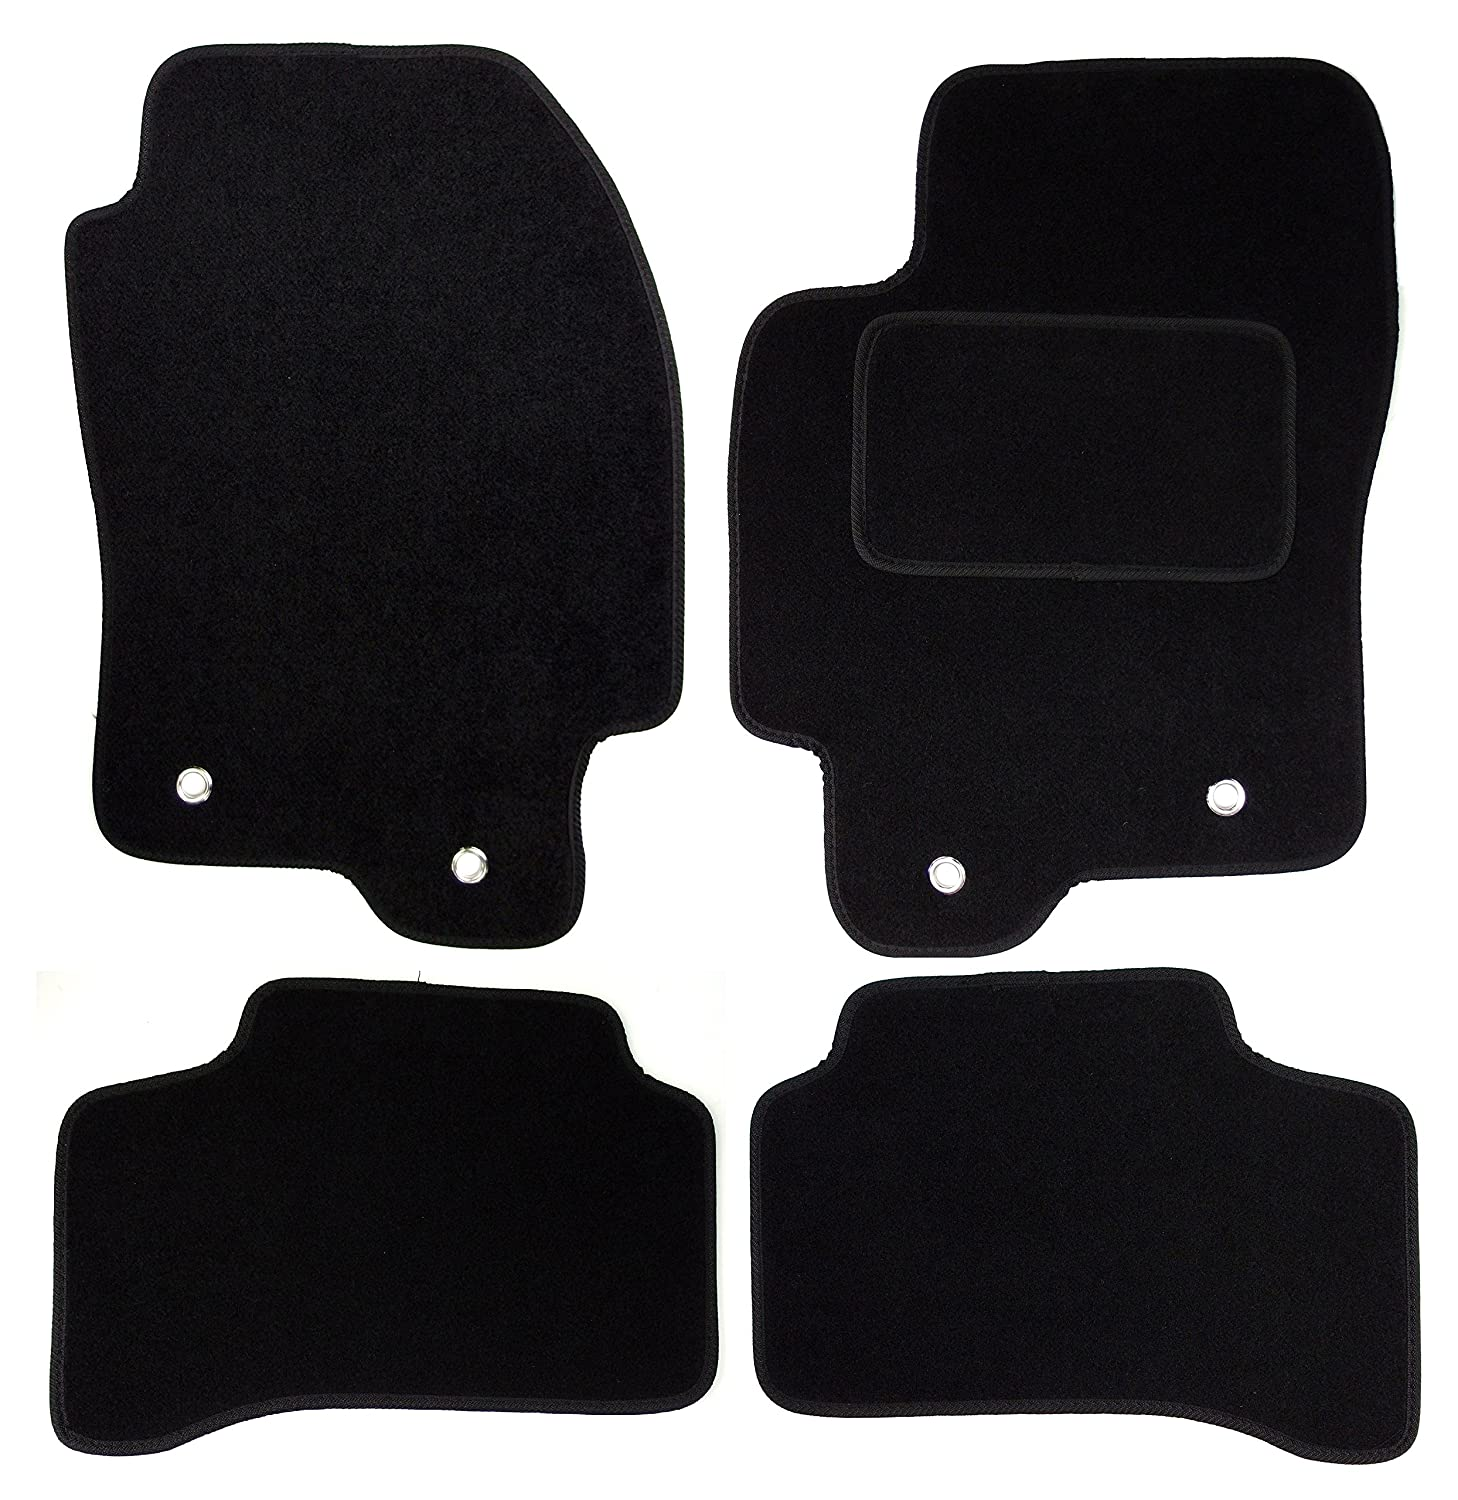 Easimat fed21363 Tailored Carpet Car Mats 4pc